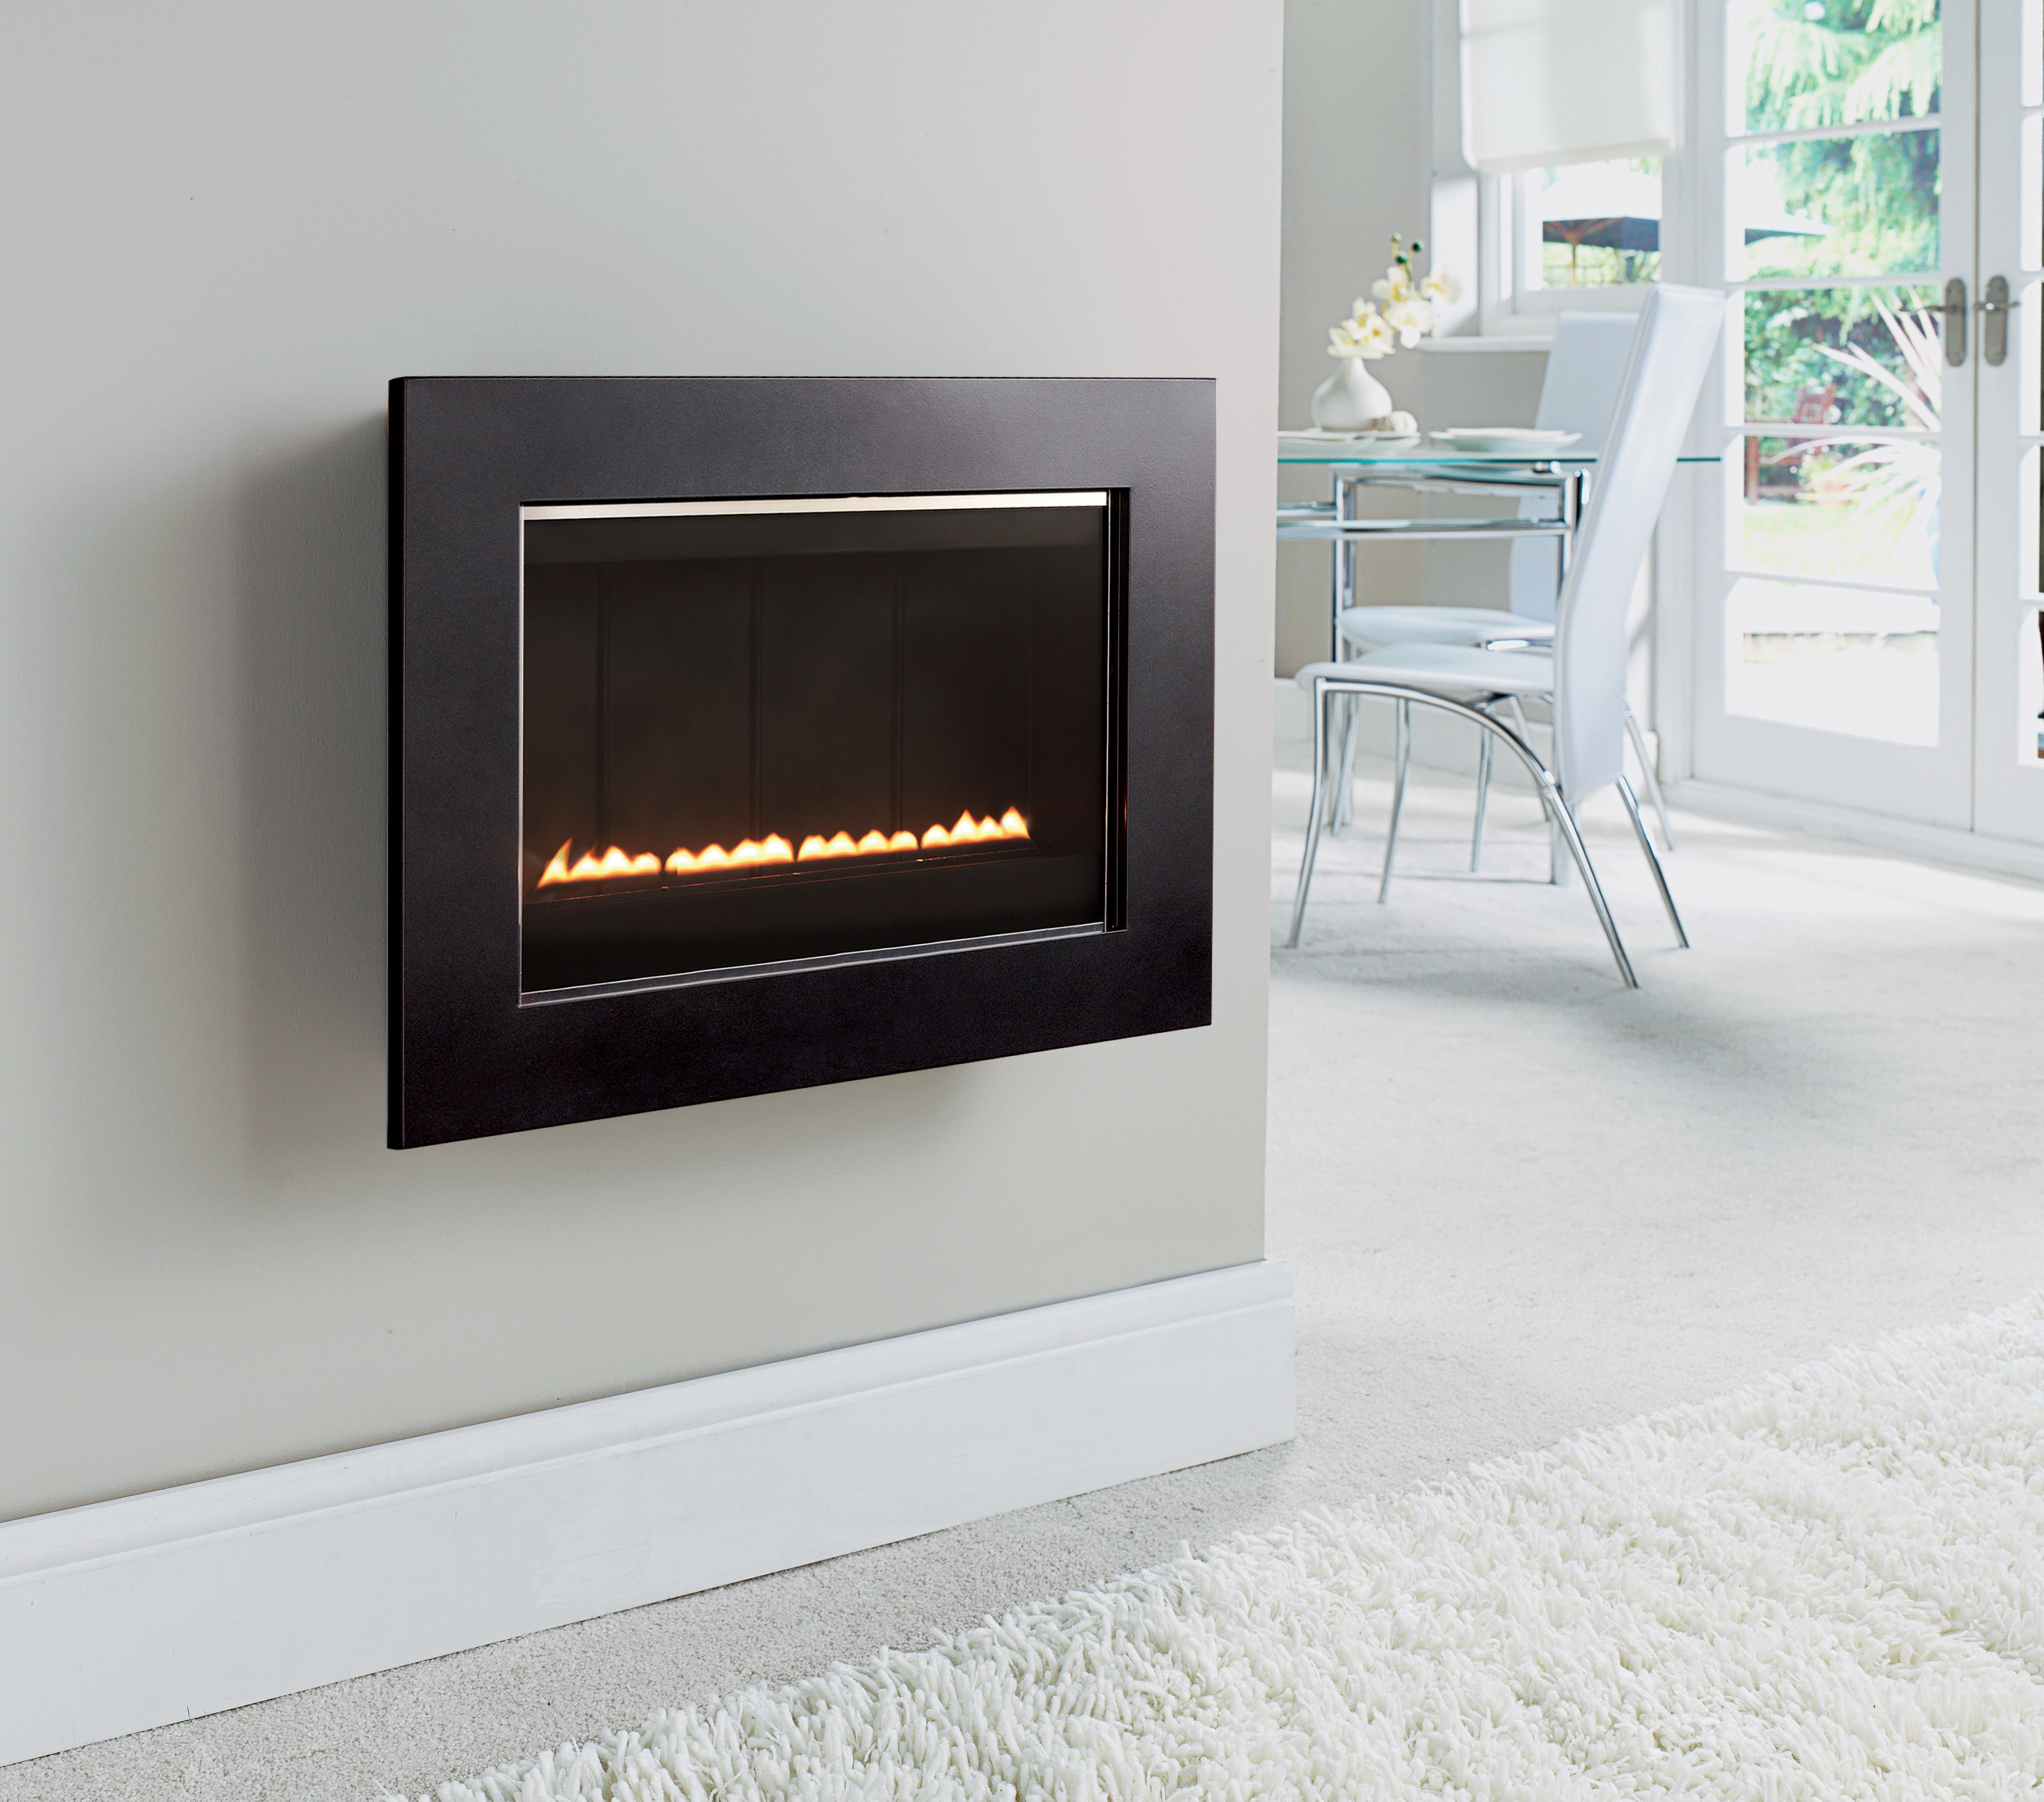 sfl50 wall mounted flueless gas fire flueless wall mounted gas